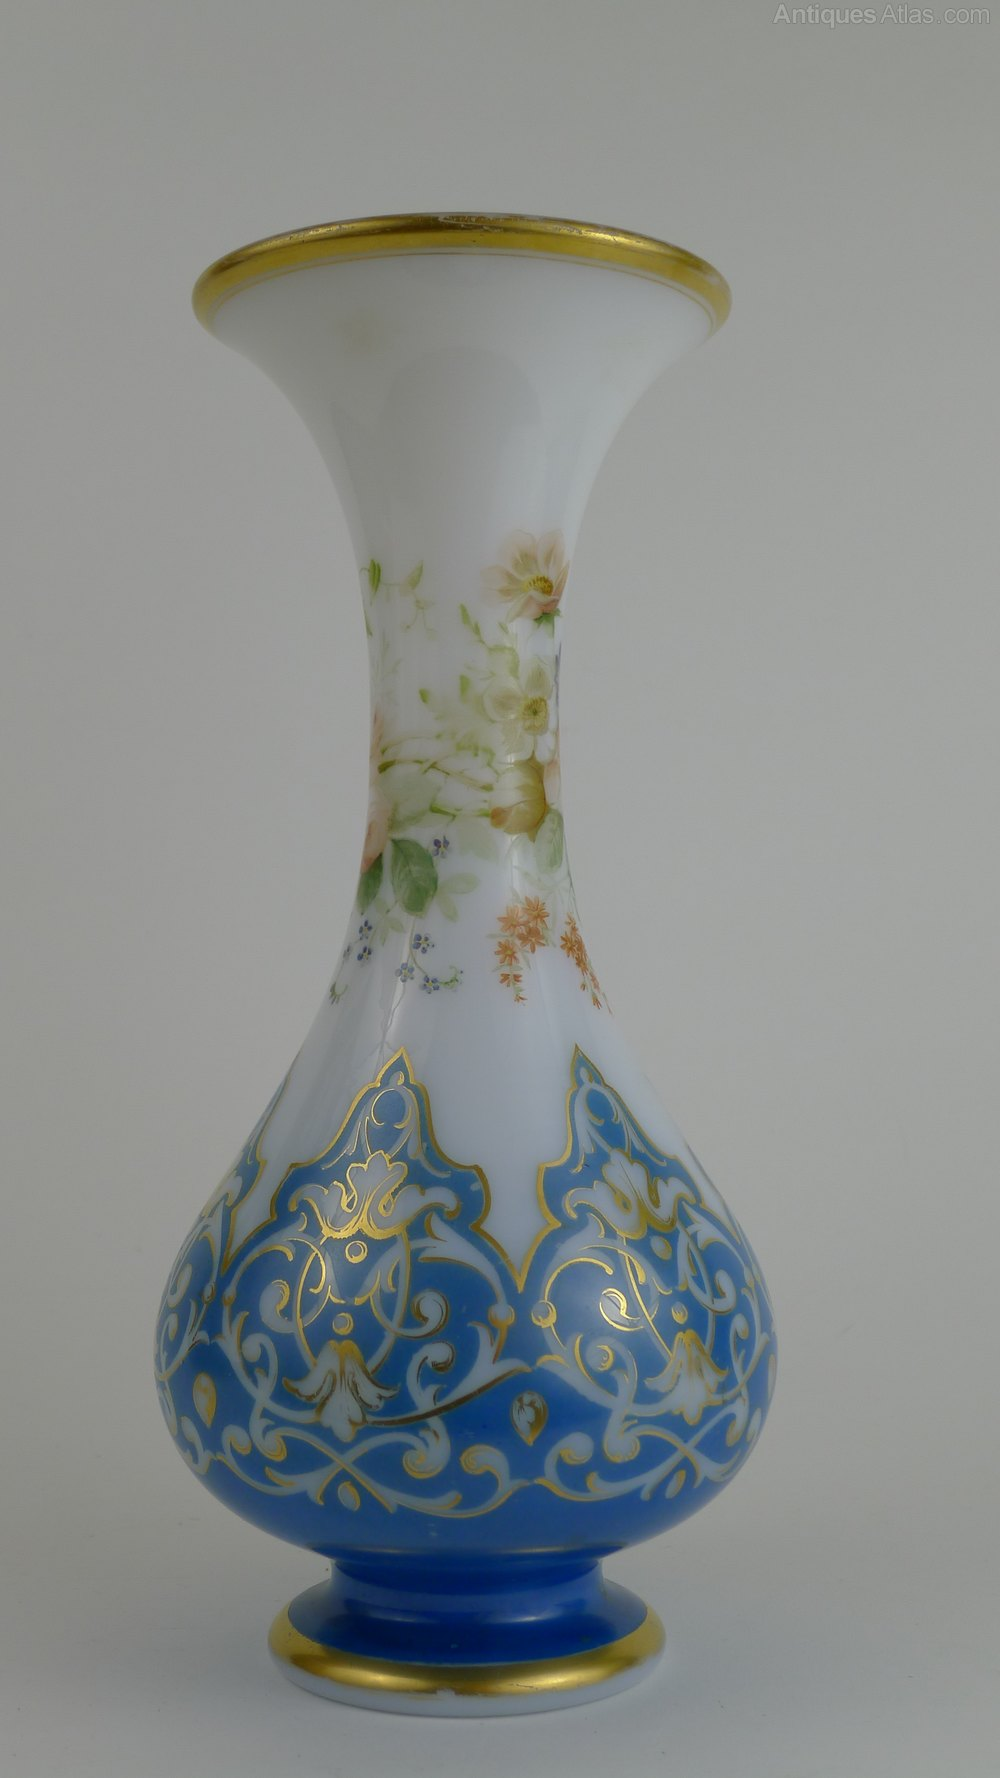 Antiques Atlas Late 19th Century French Opaline Glass Vase